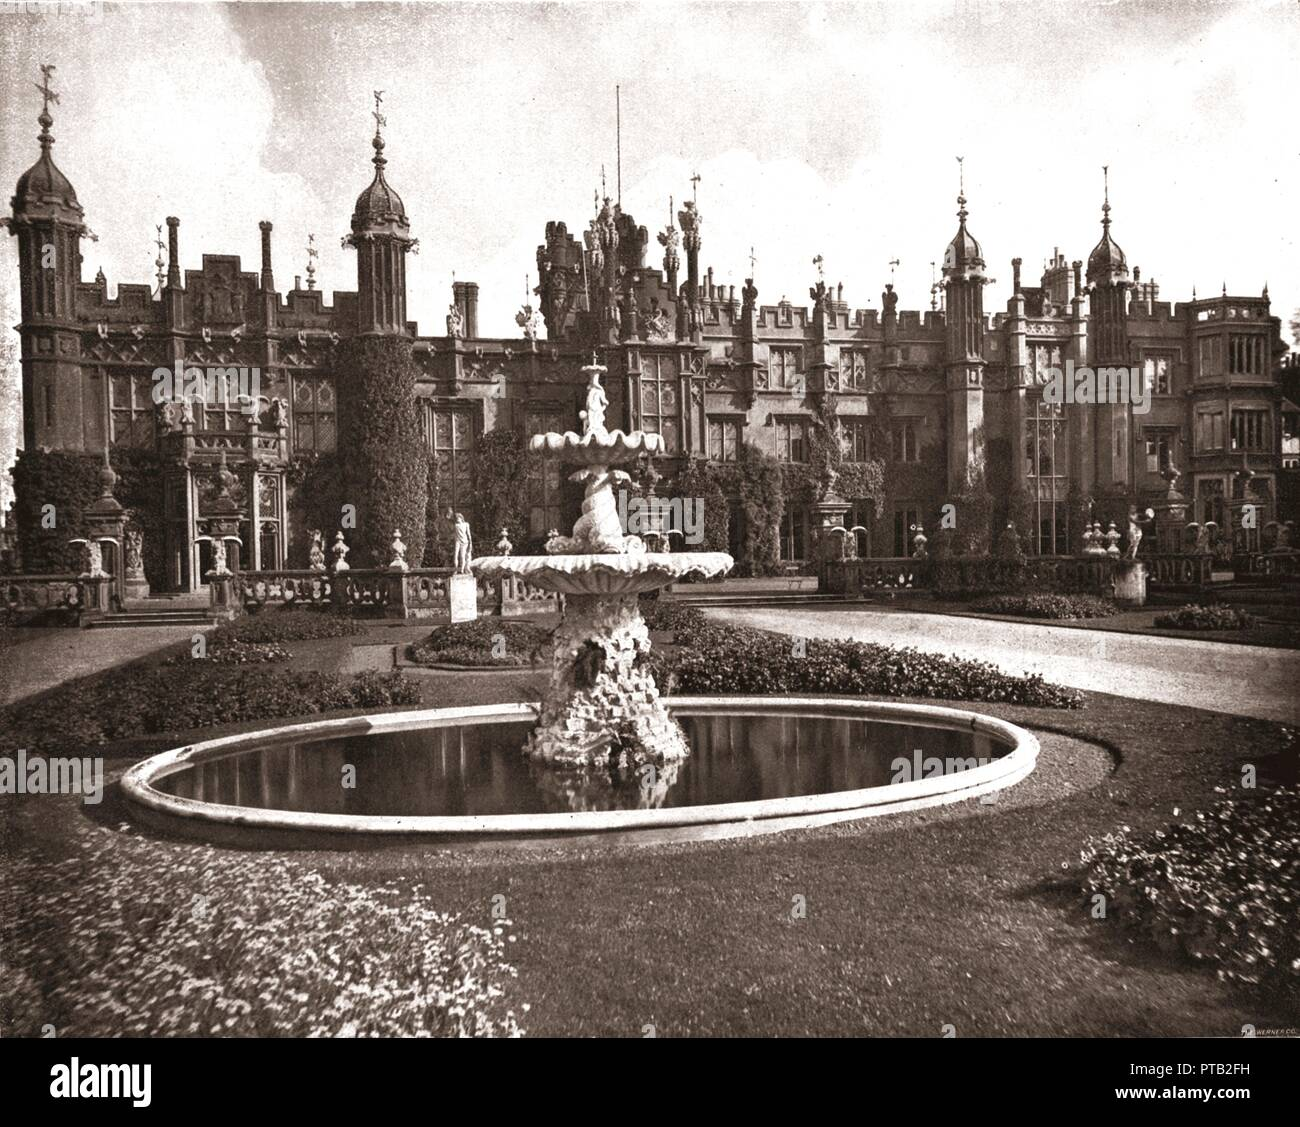 Knebworth House, Hertfordshire, 1894. View of the house and gardens, home of the Lytton family since 1490. The neo-Gothic facade was built in the 19th century. From Beautiful Britain; views of our stately homes. [The Werner Company of Chicago, 1894] - Stock Image